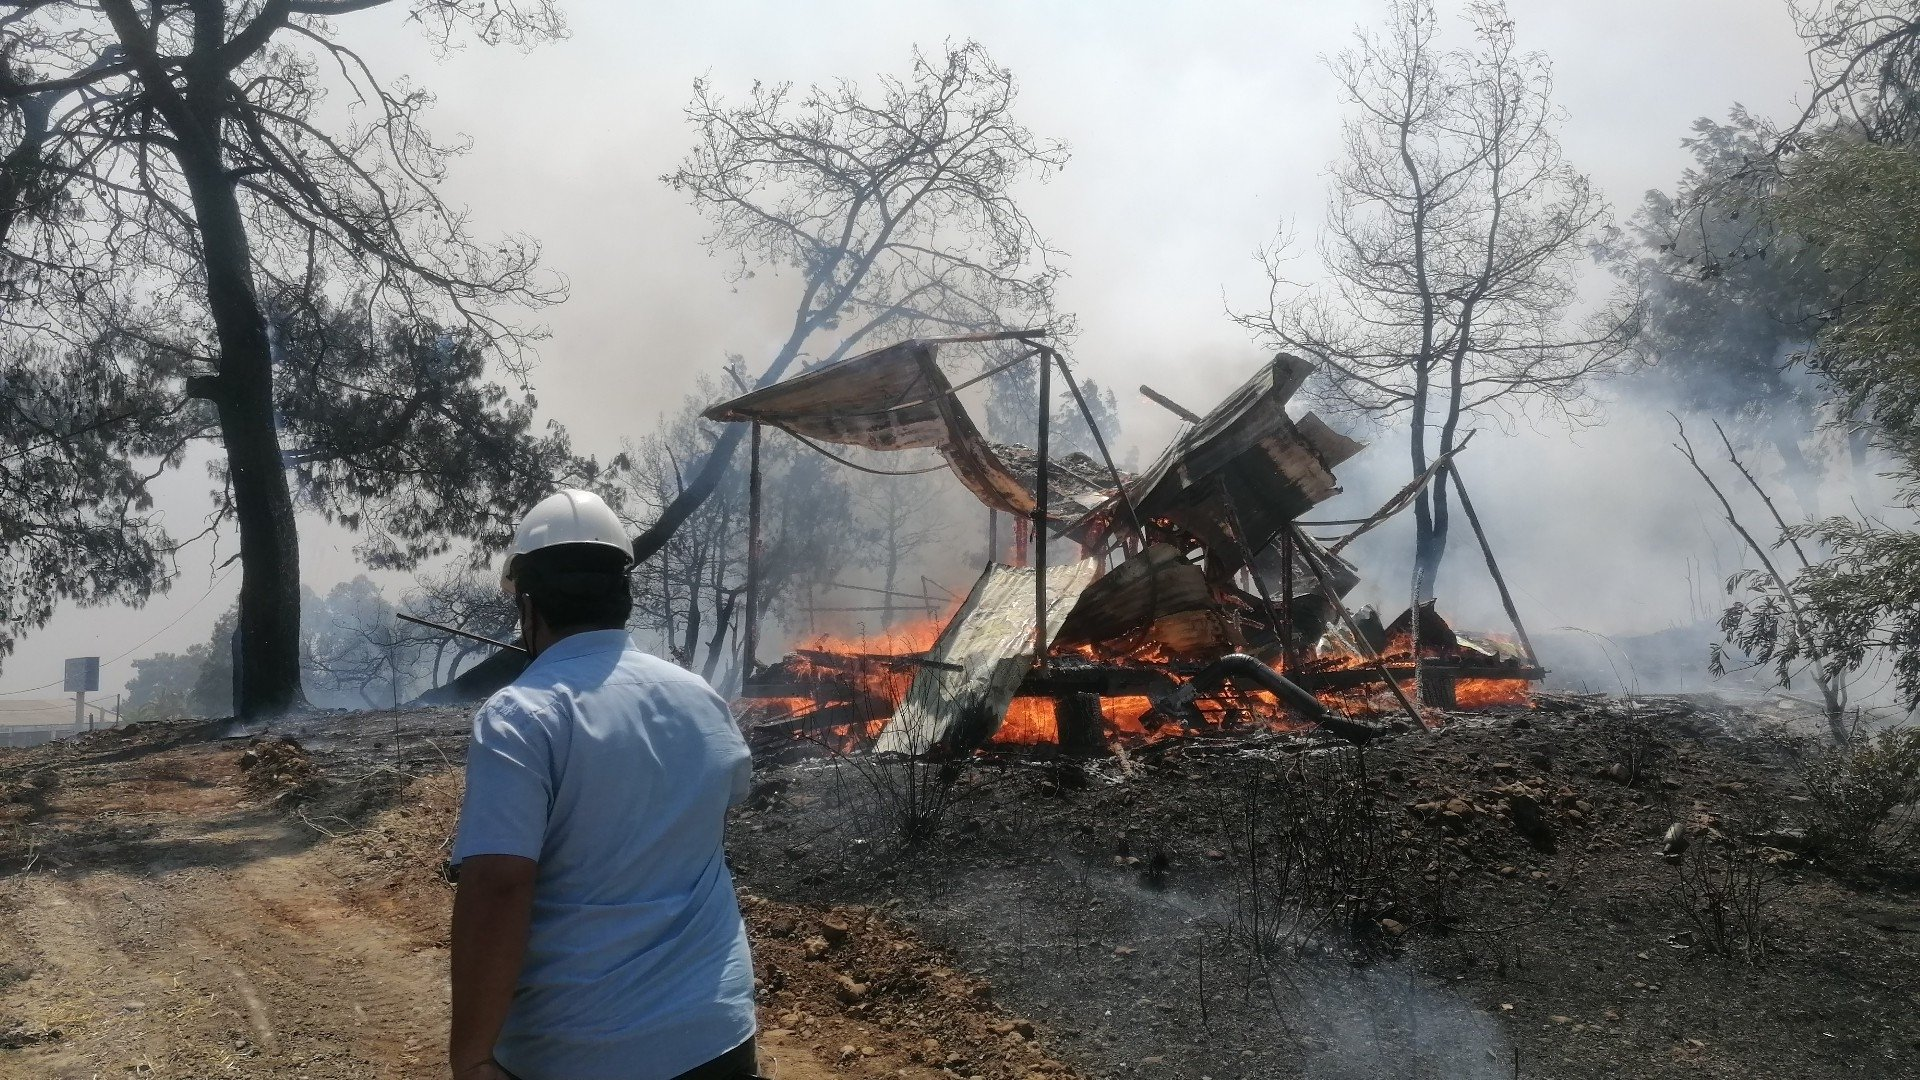 A man watches as flames destroy a shack inside the forest in Manavgat district, in Antalya, southern Turkey, July 28, 2021. (İHA PHOTO)